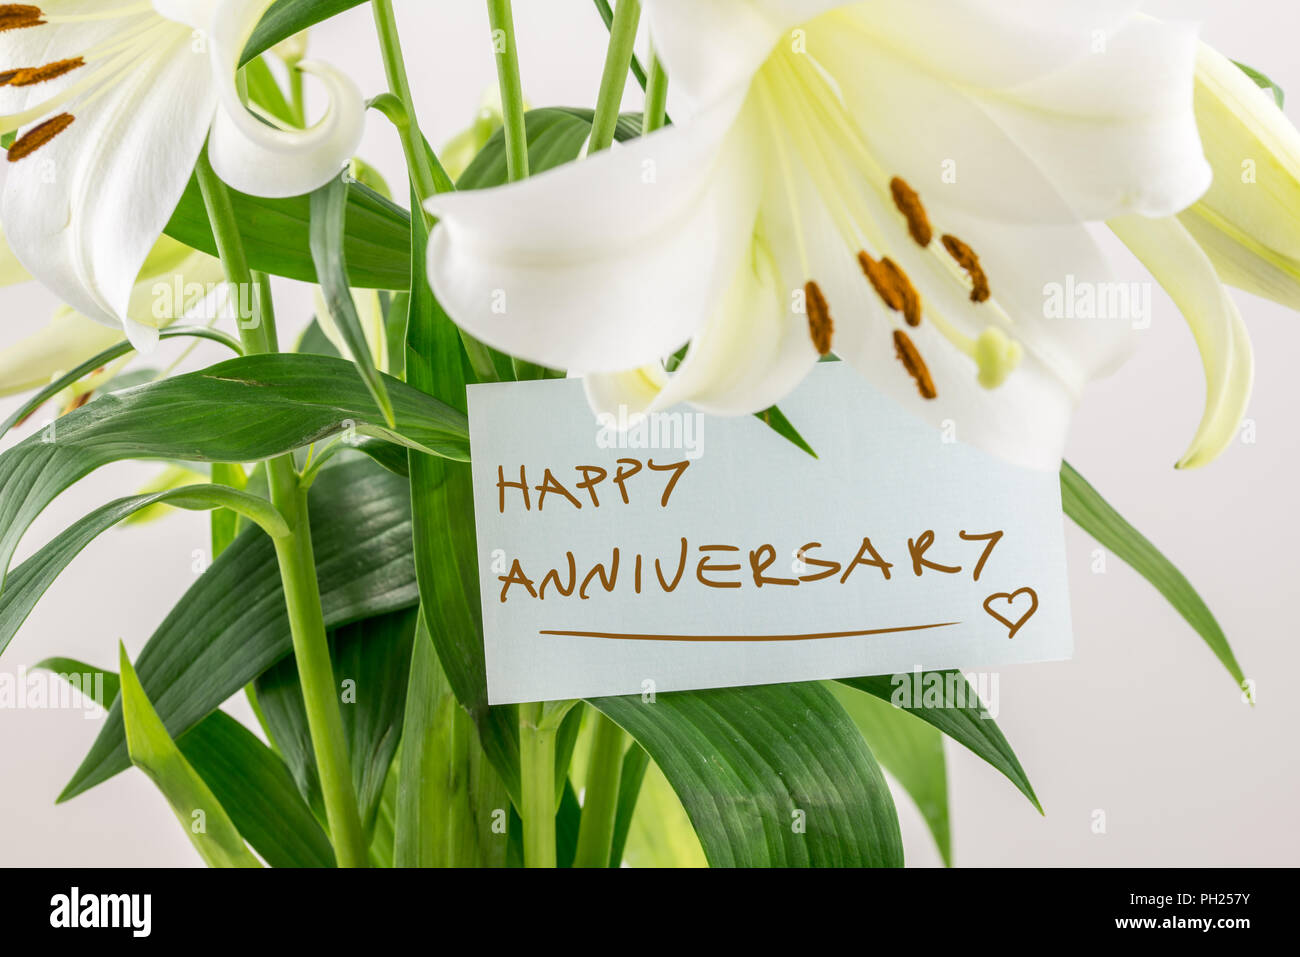 Happy anniversary floral gift of a bouquet of fresh white lilies with a hand-written note saying - Happy Anniversary - for a loved one or sweetheart. - Stock Image